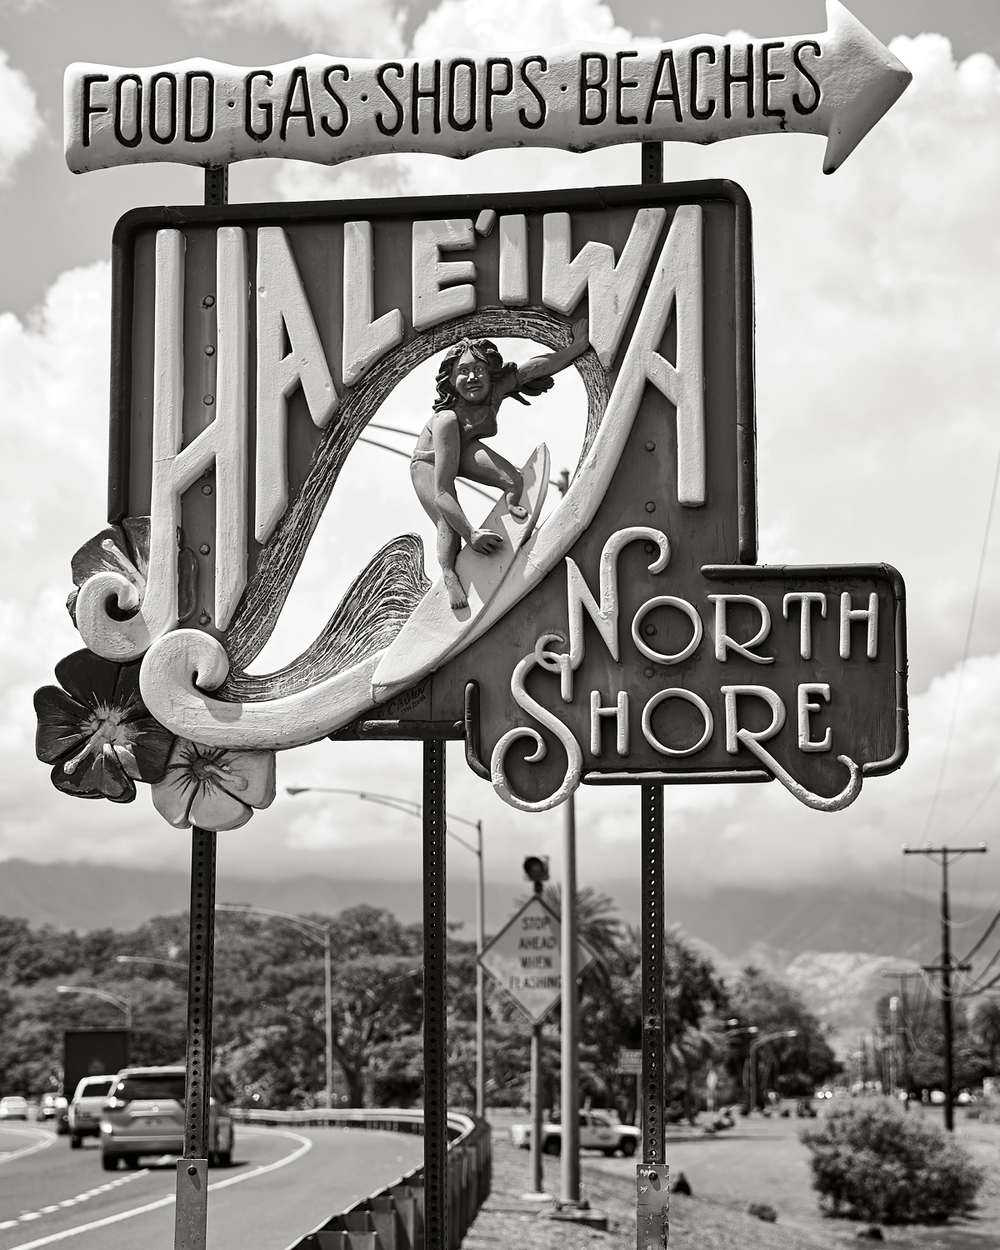 HALE'IWA ON THE NORTH SHORE